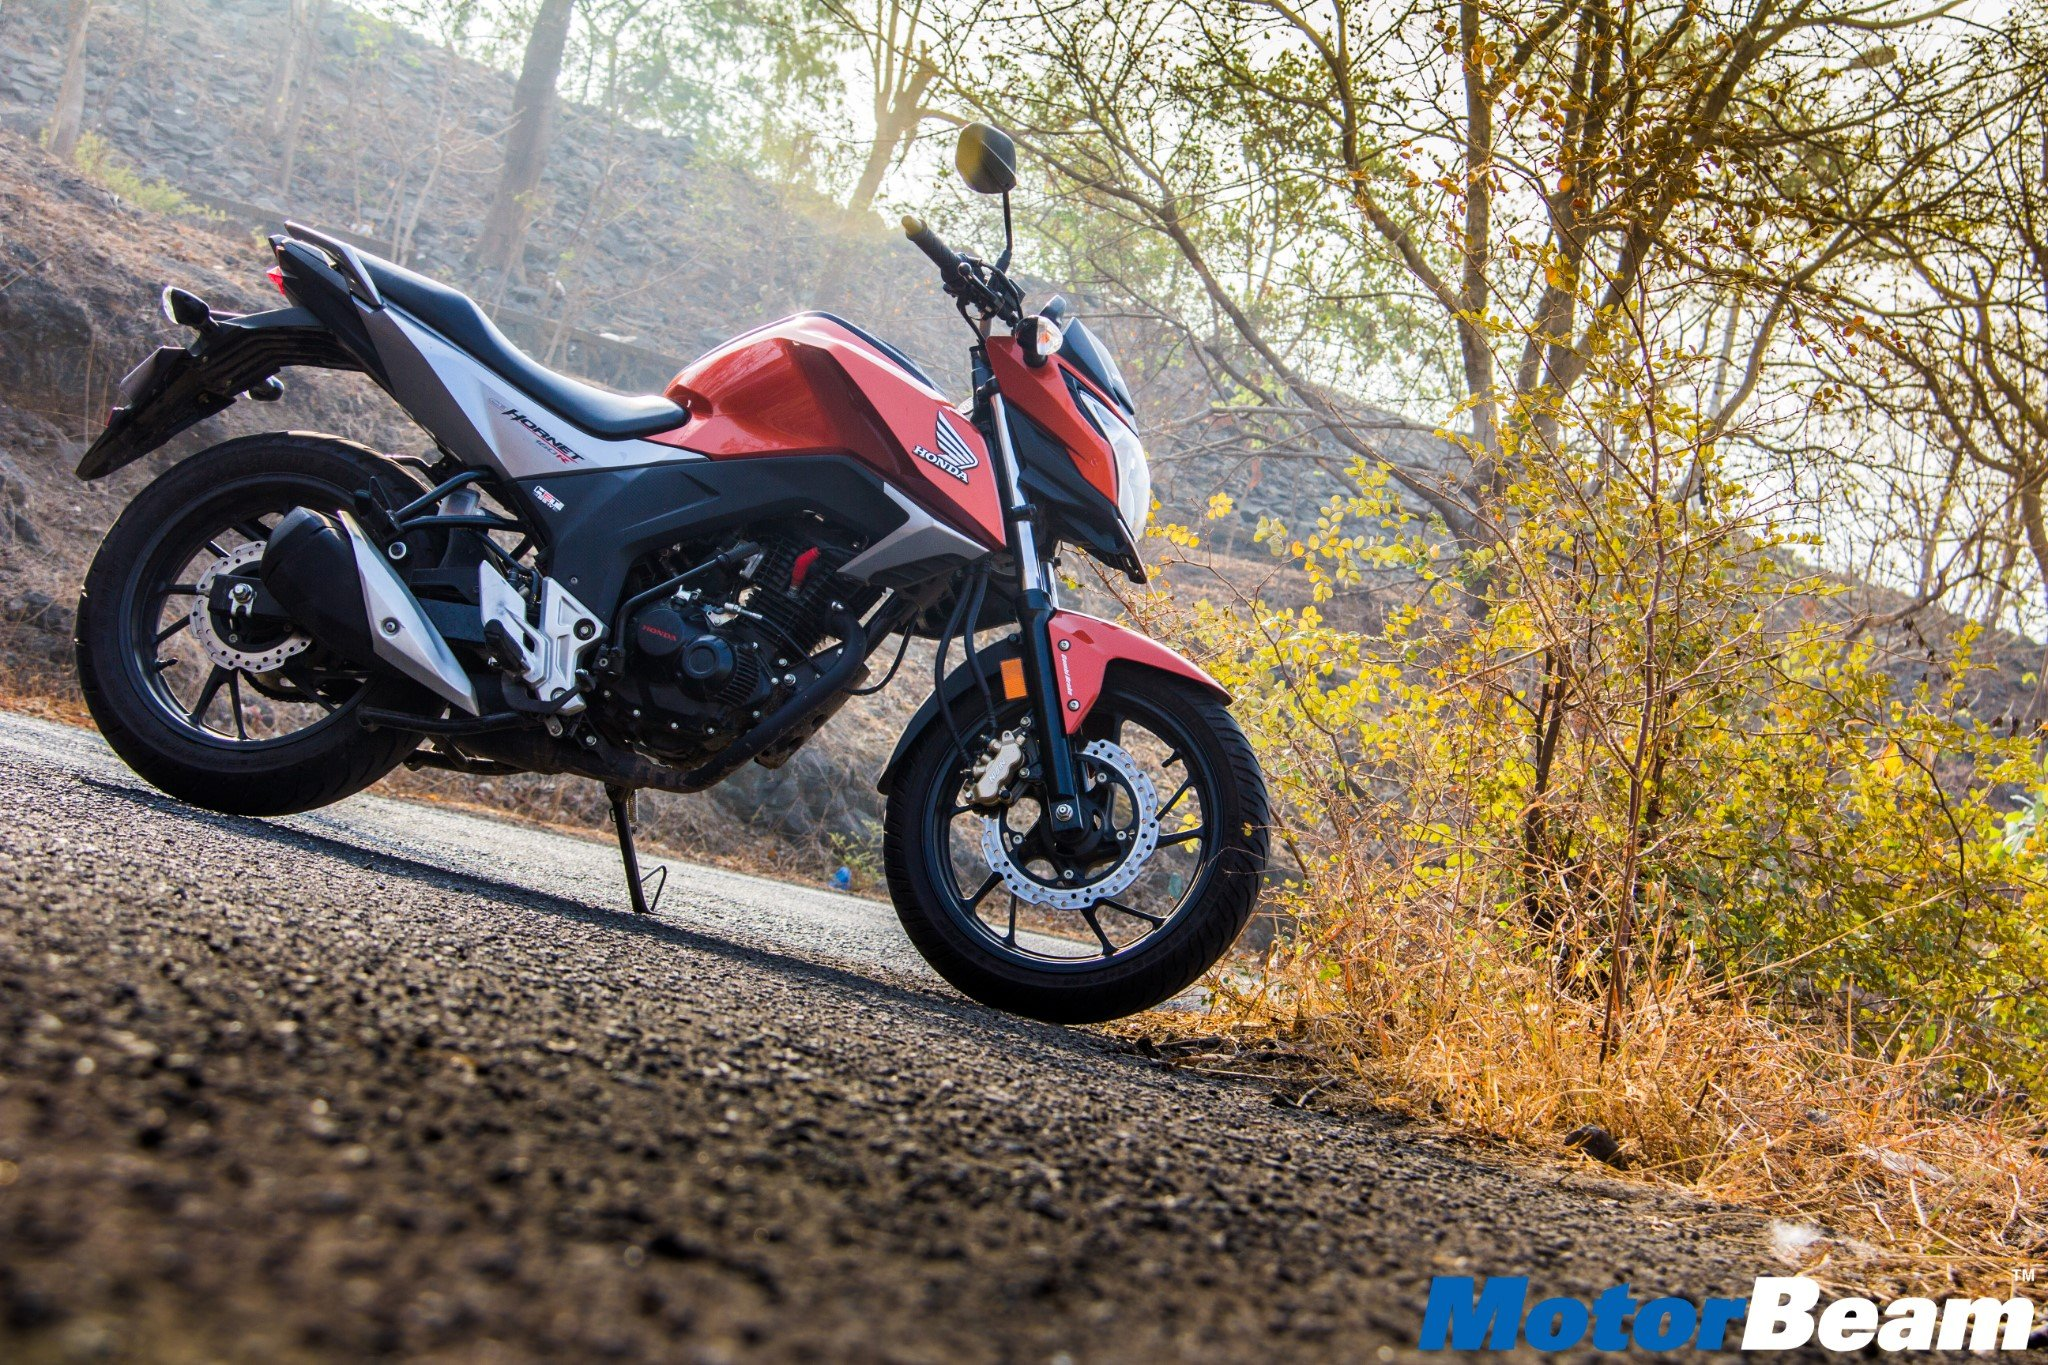 Honda CB Hornet 160R Long Term Reliability